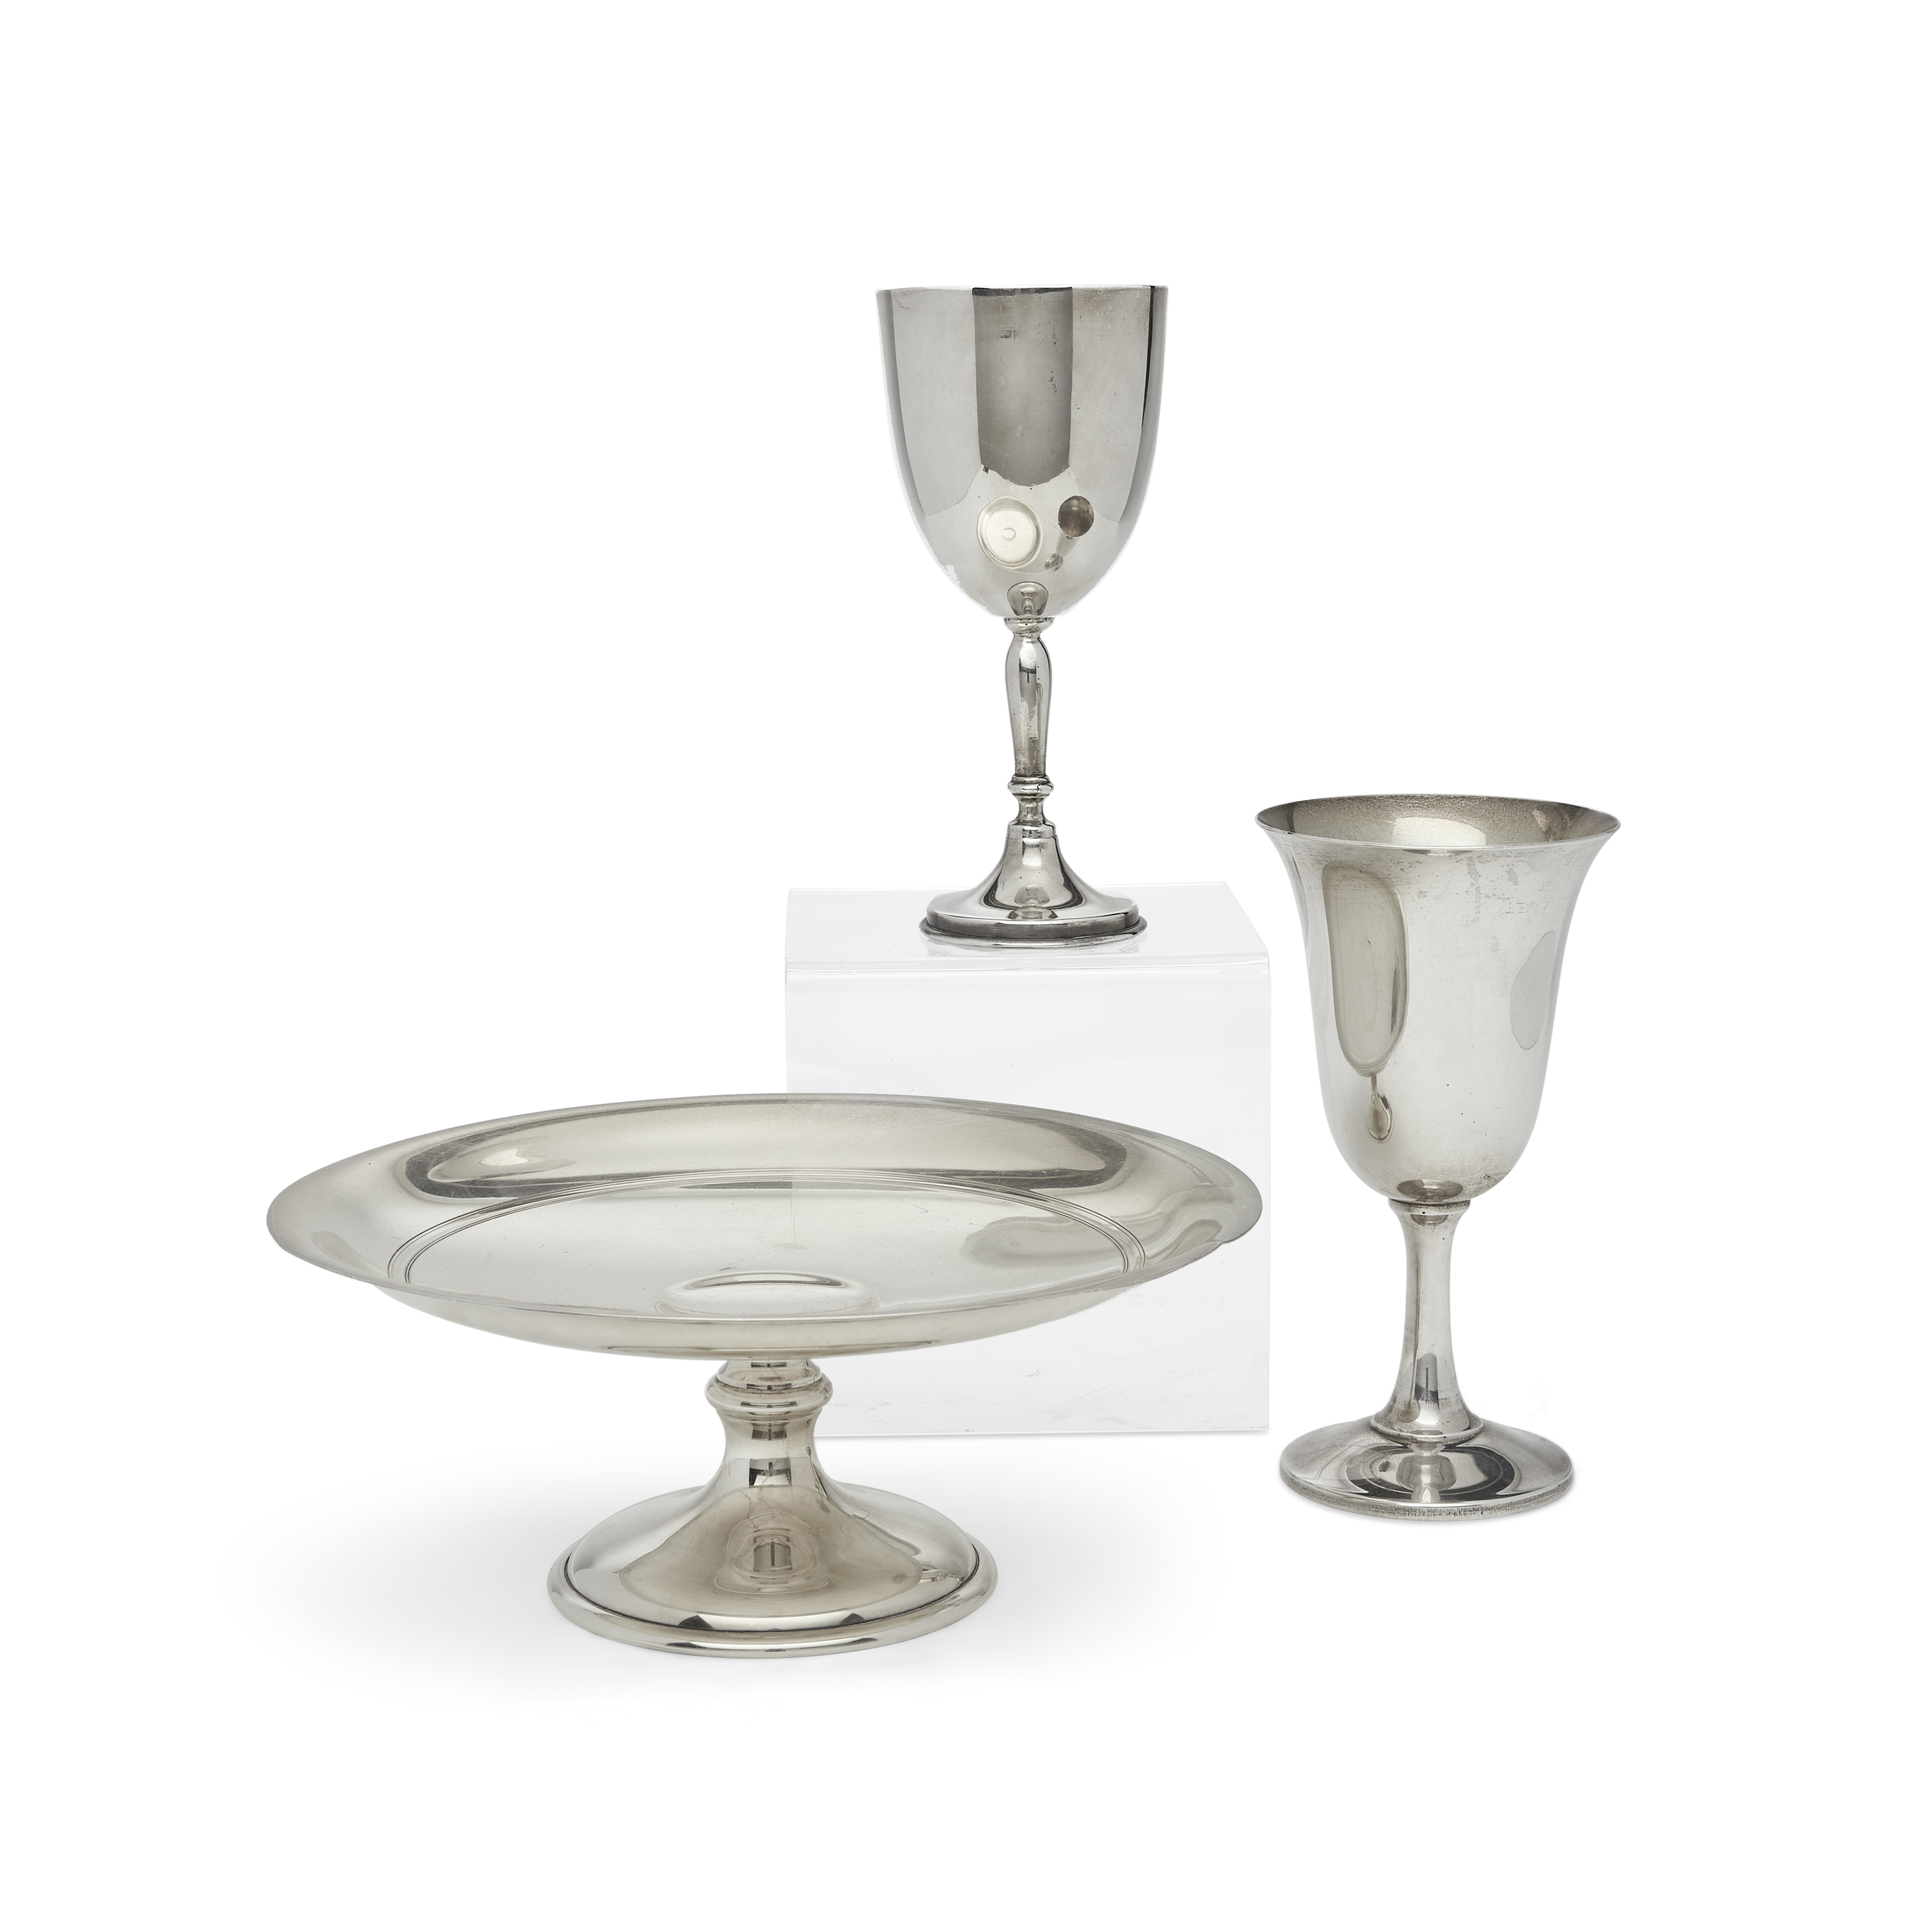 A set of eight sterling silver goblets by Wallace Silversmiths, Wallingford, CT, 20th century